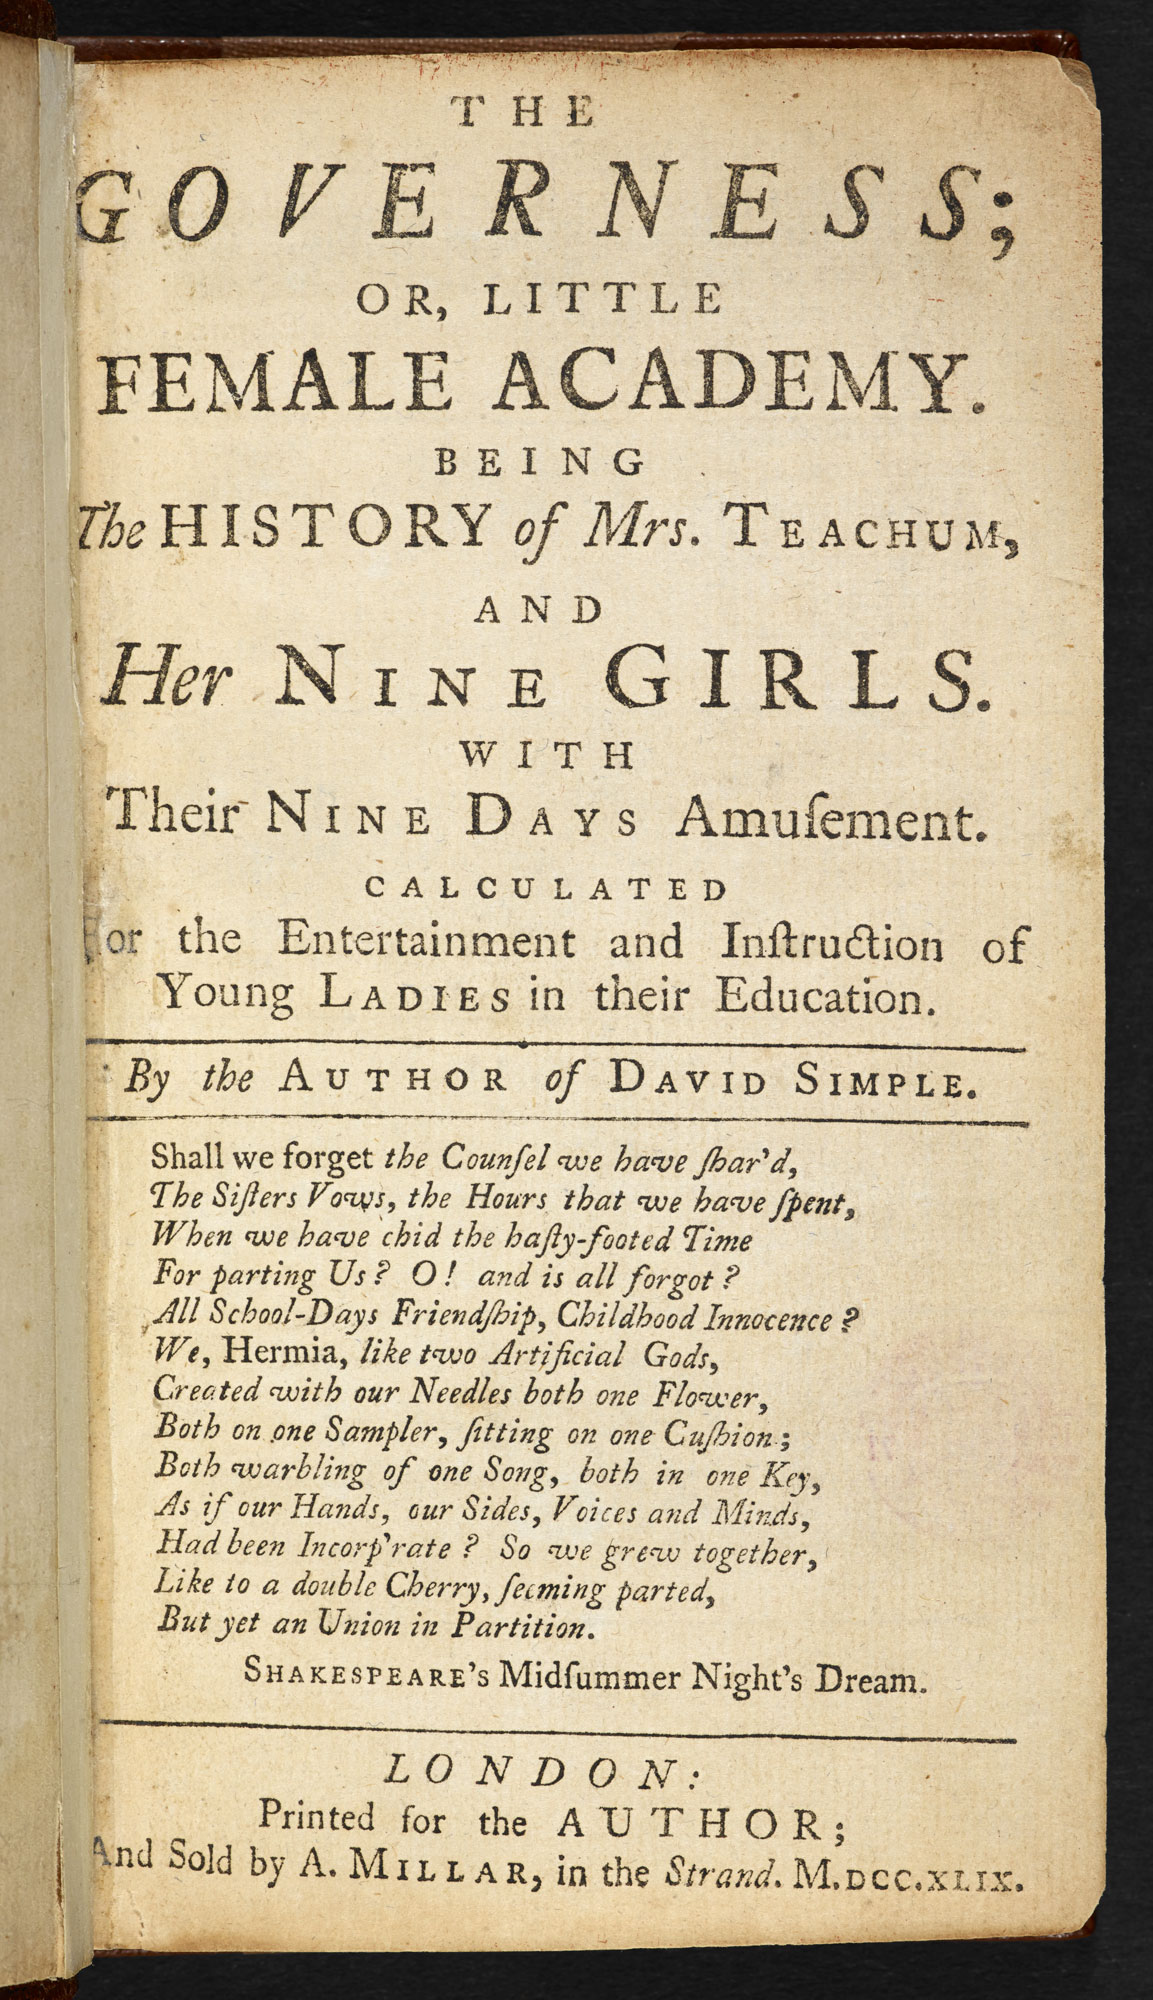 The Governess; or Little Female Academy [page: title page]